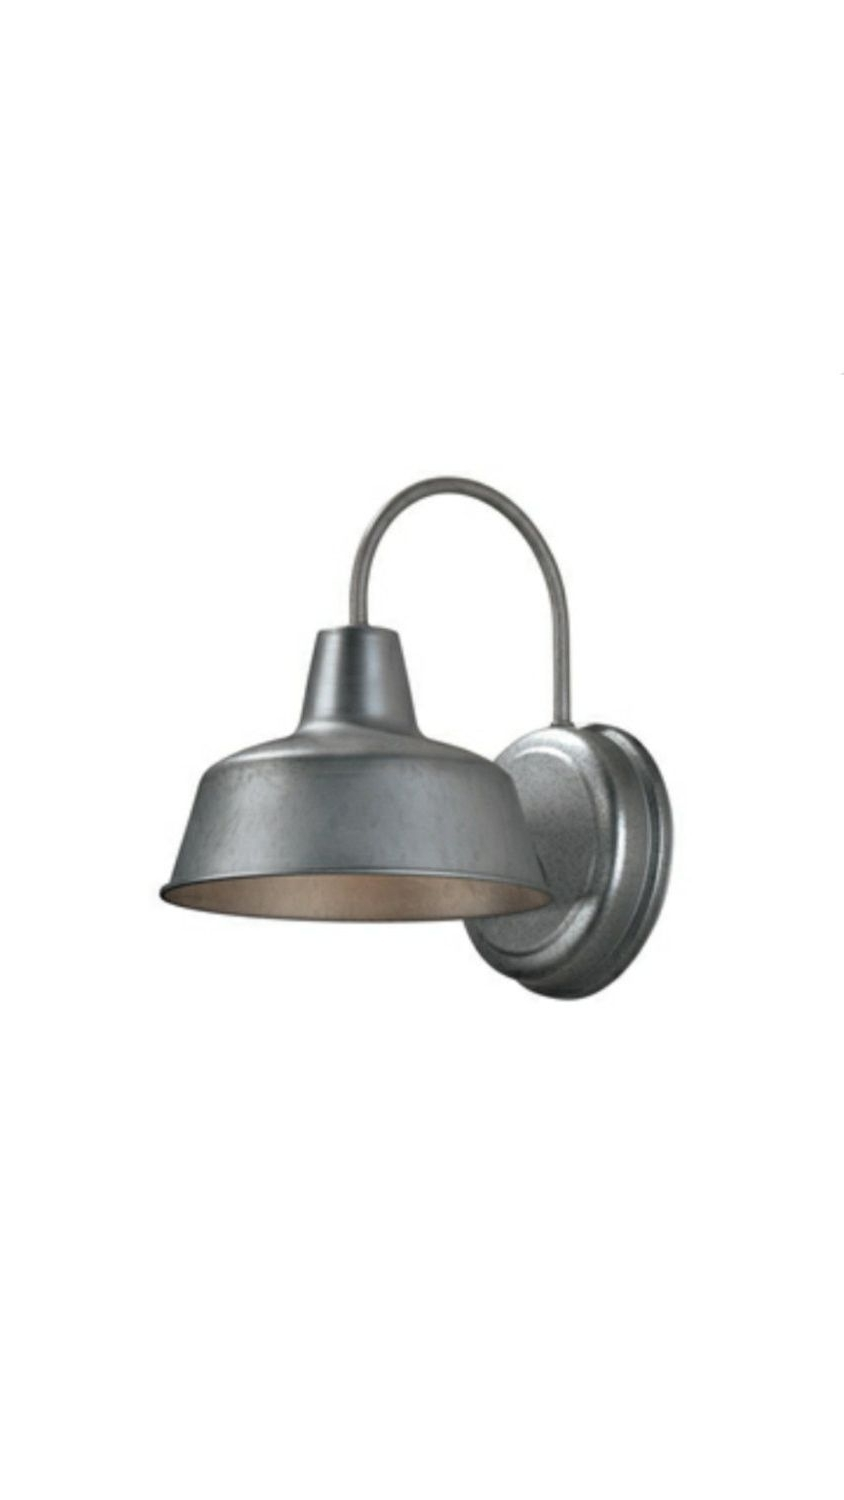 Galvanized Outdoor Ceiling Lights Within Popular Farmhouse Sconce Light. Very Versatile! Can Be Used Indoors Or (Gallery 20 of 20)